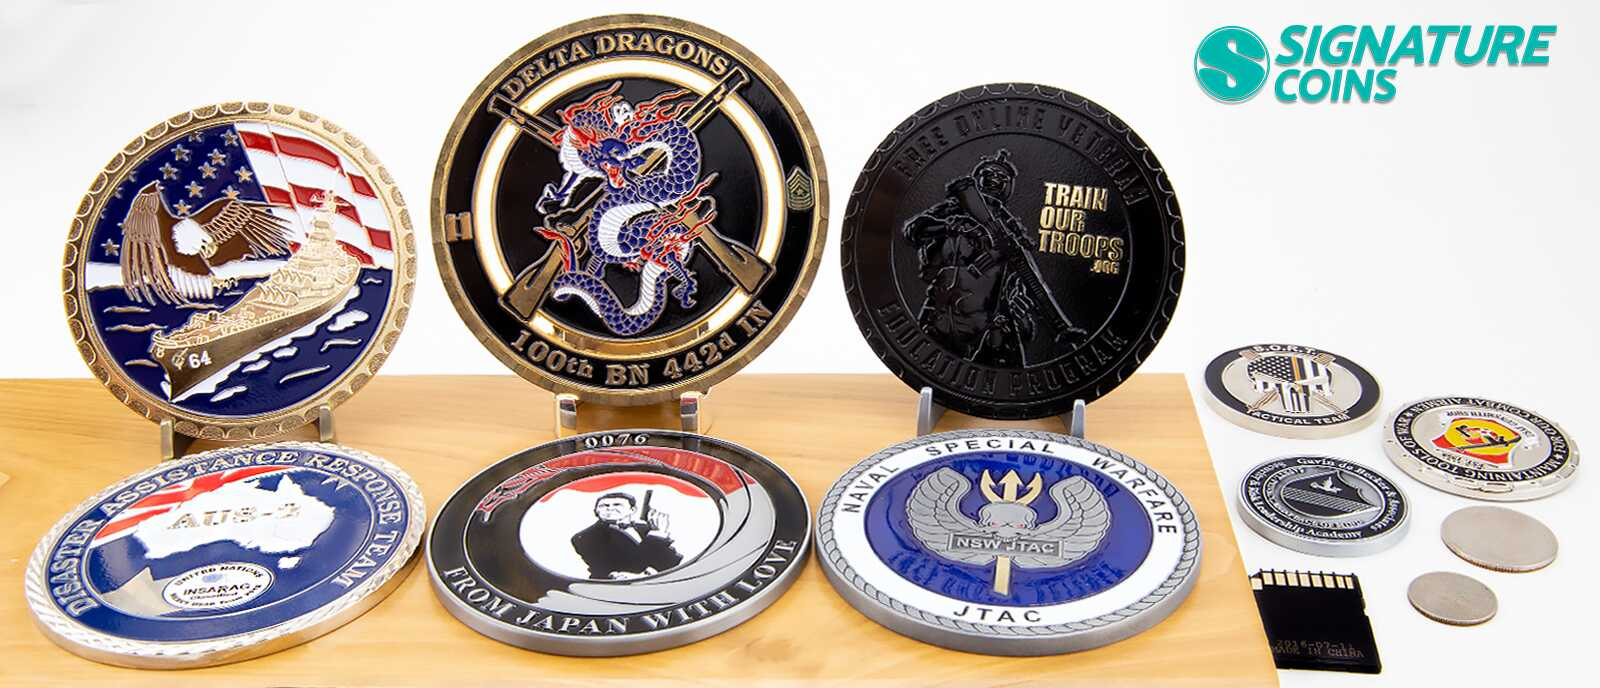 Signaturecoins-Oversized-size-challengecoin-reference5